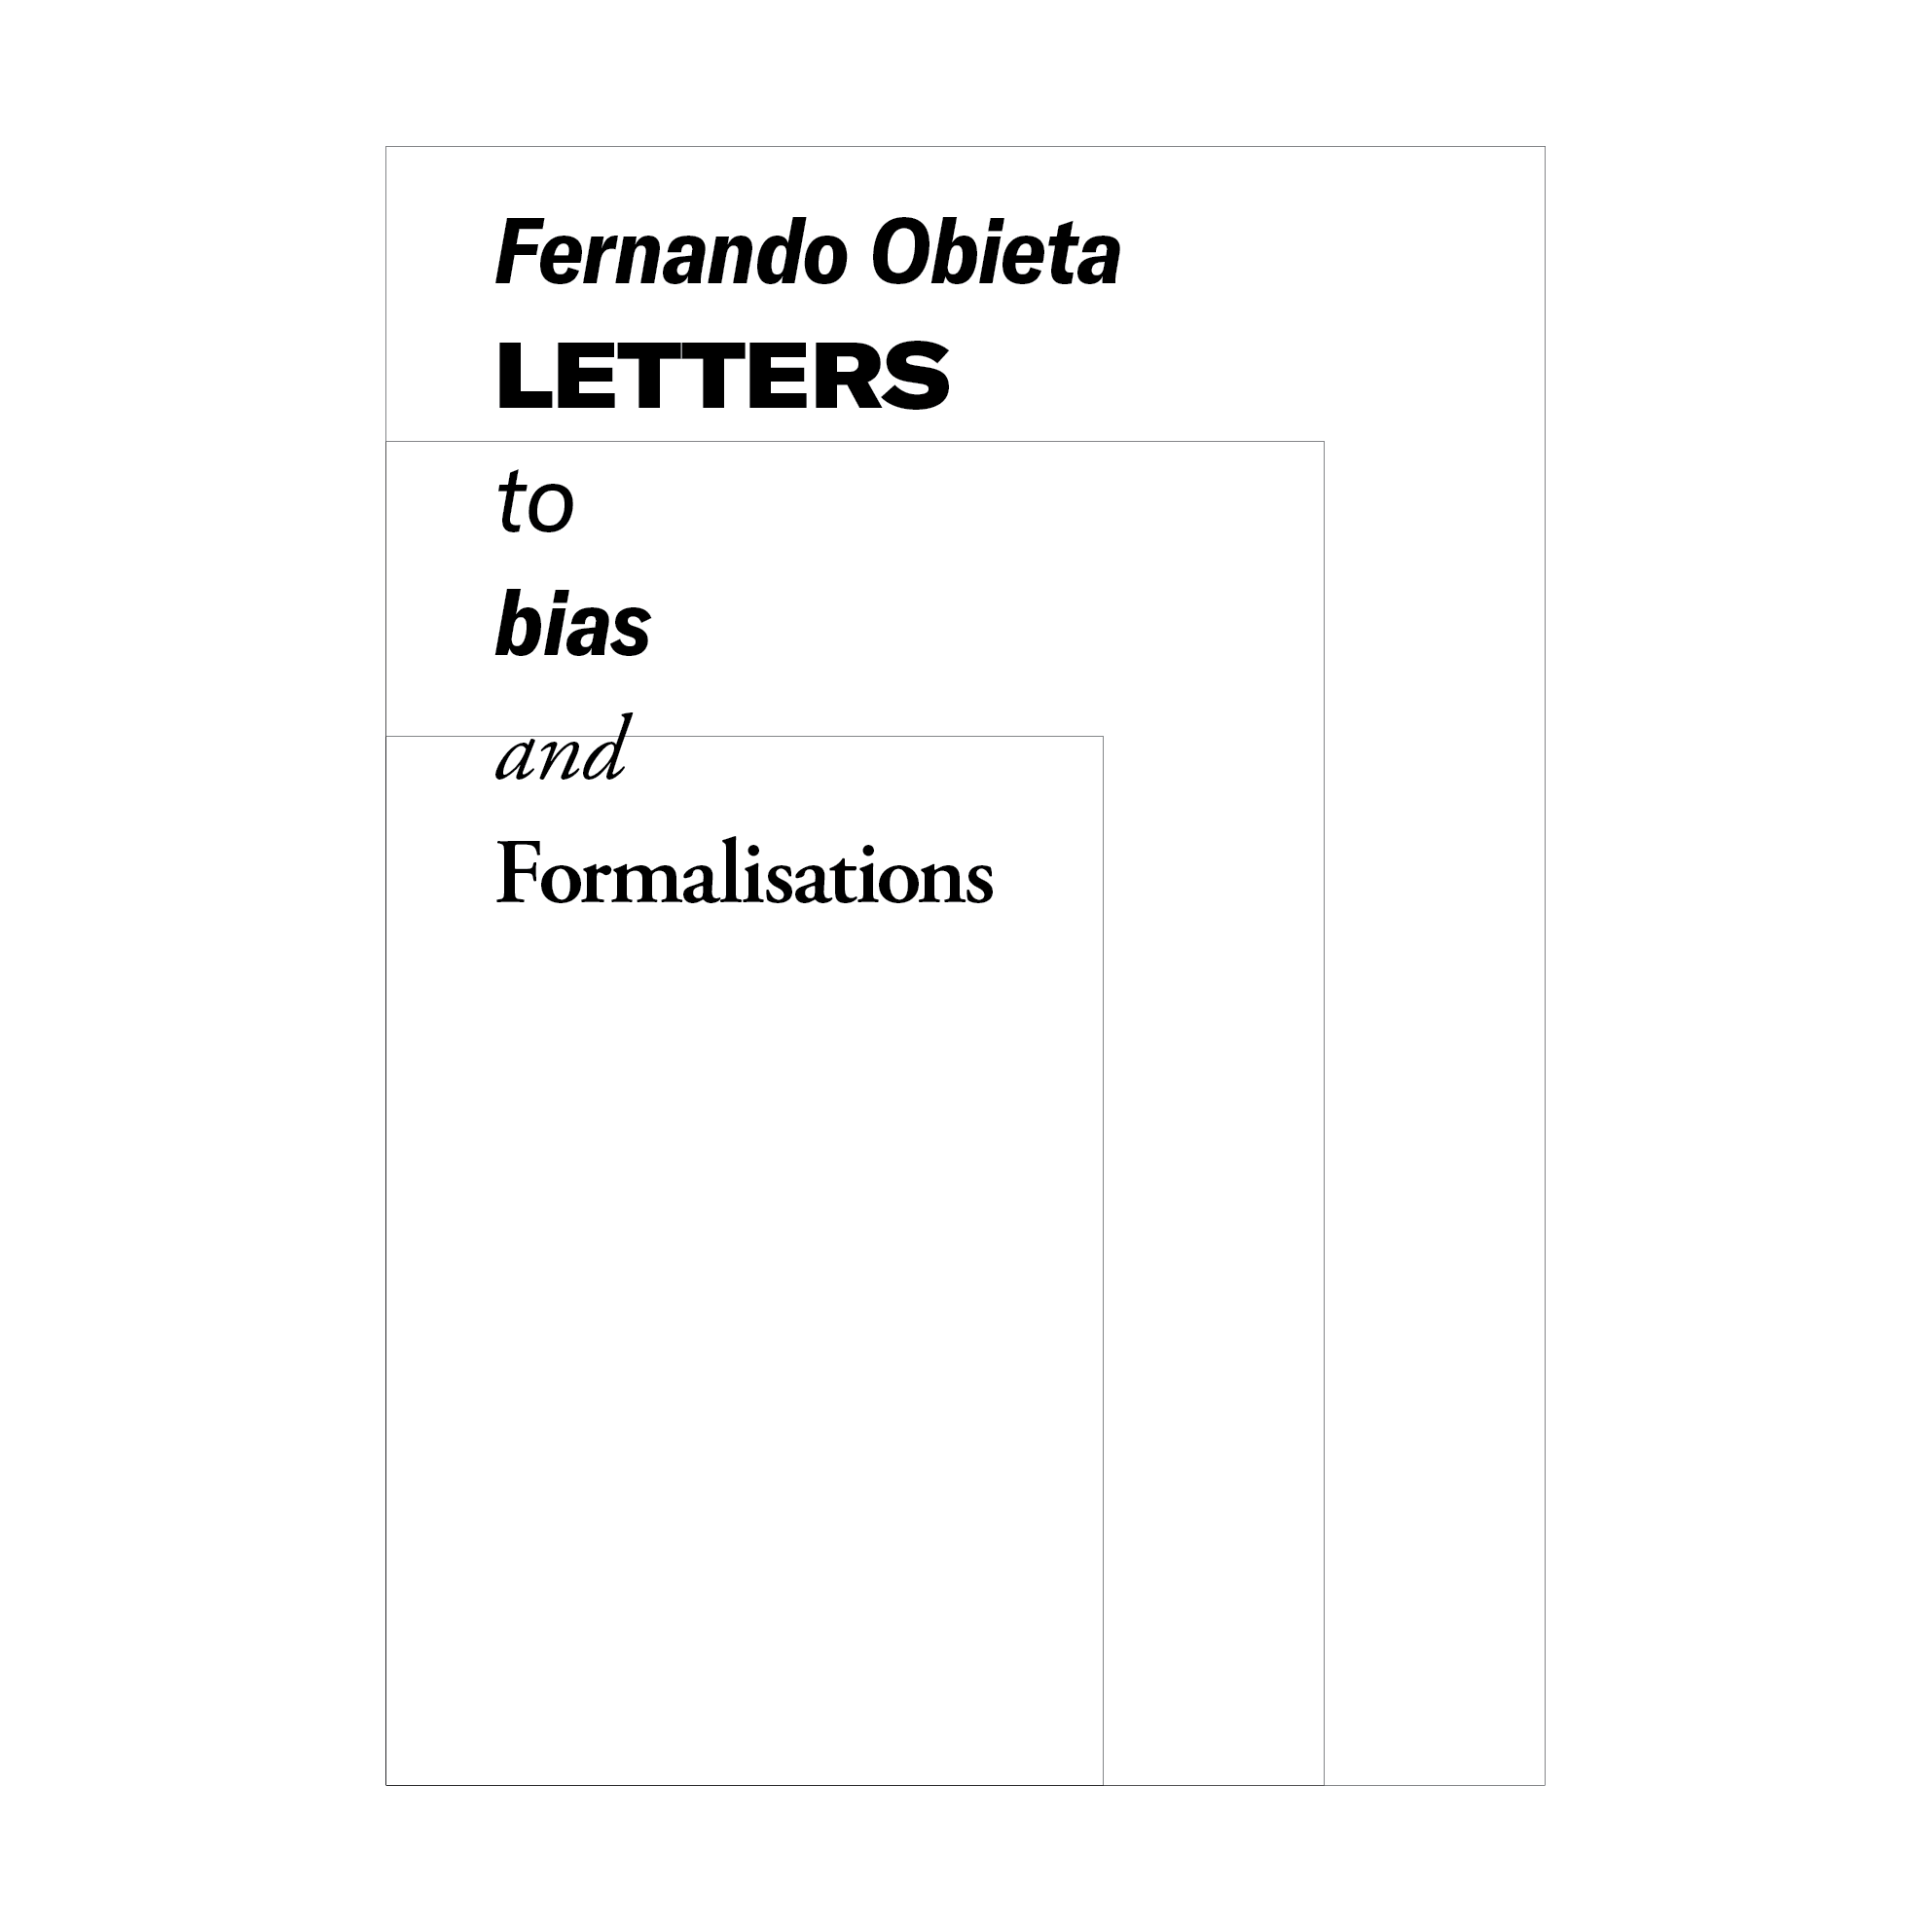 LETTERS to bias and Formalisations